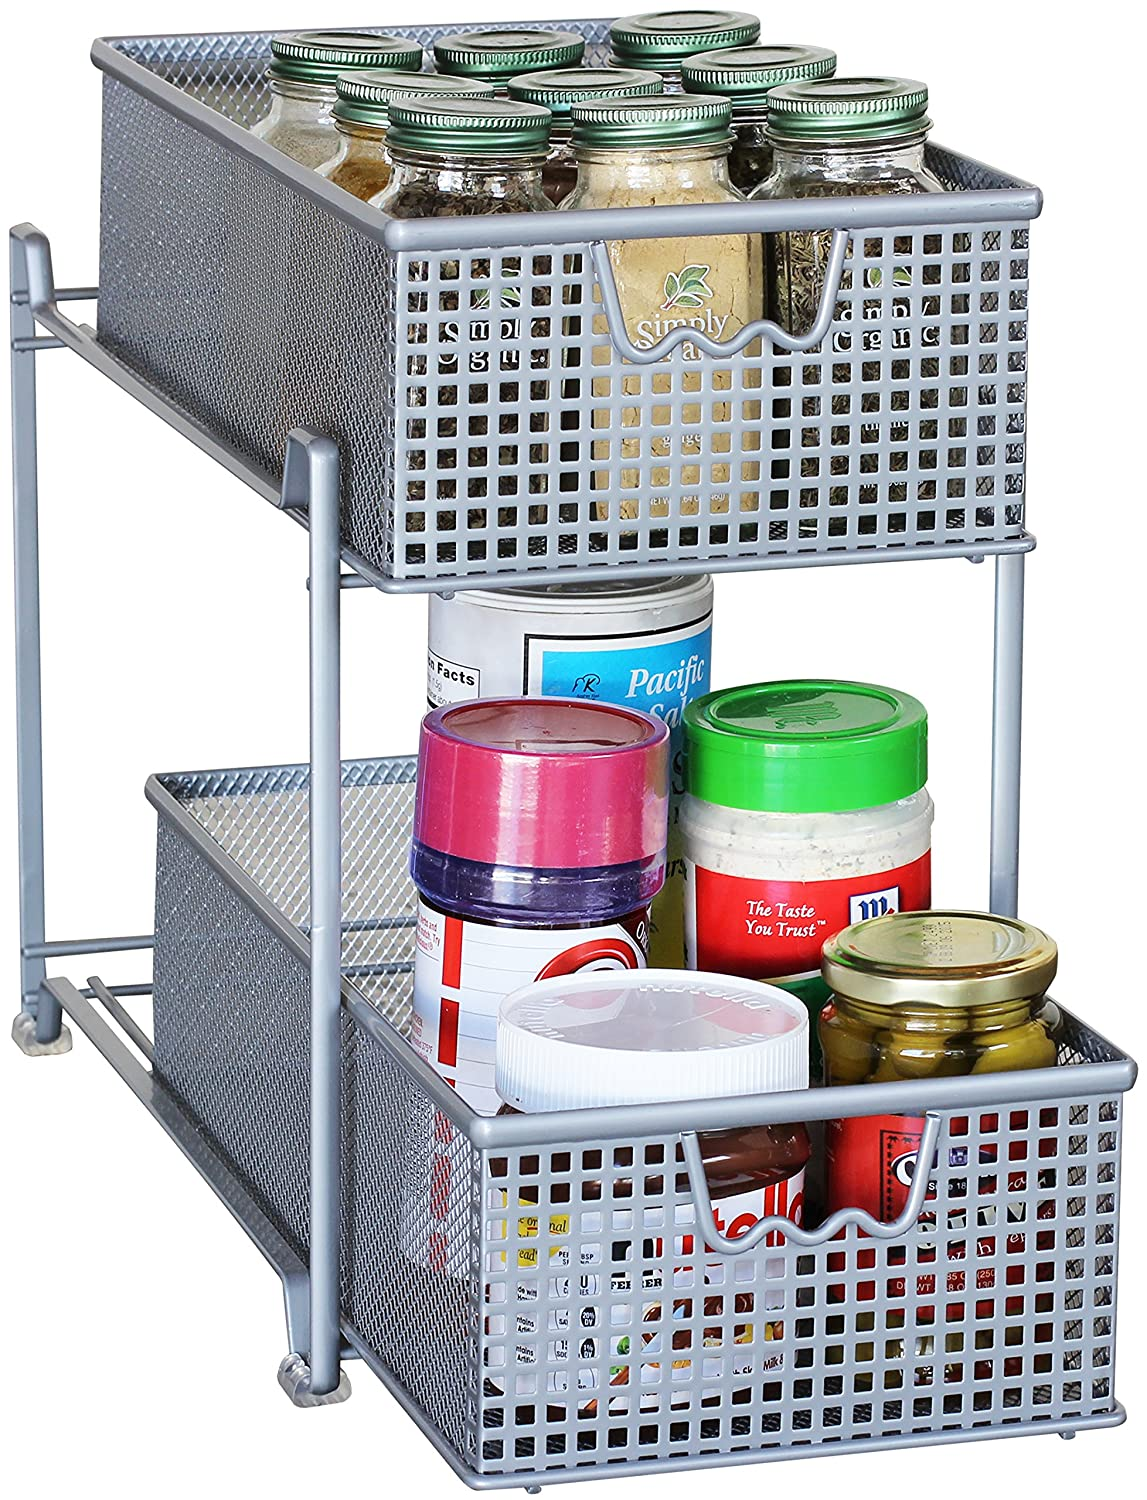 Uncategorized Sliding Basket Organizer amazon com decobros 2 tier mesh sliding cabinet basket organizer drawersilver home kitchen